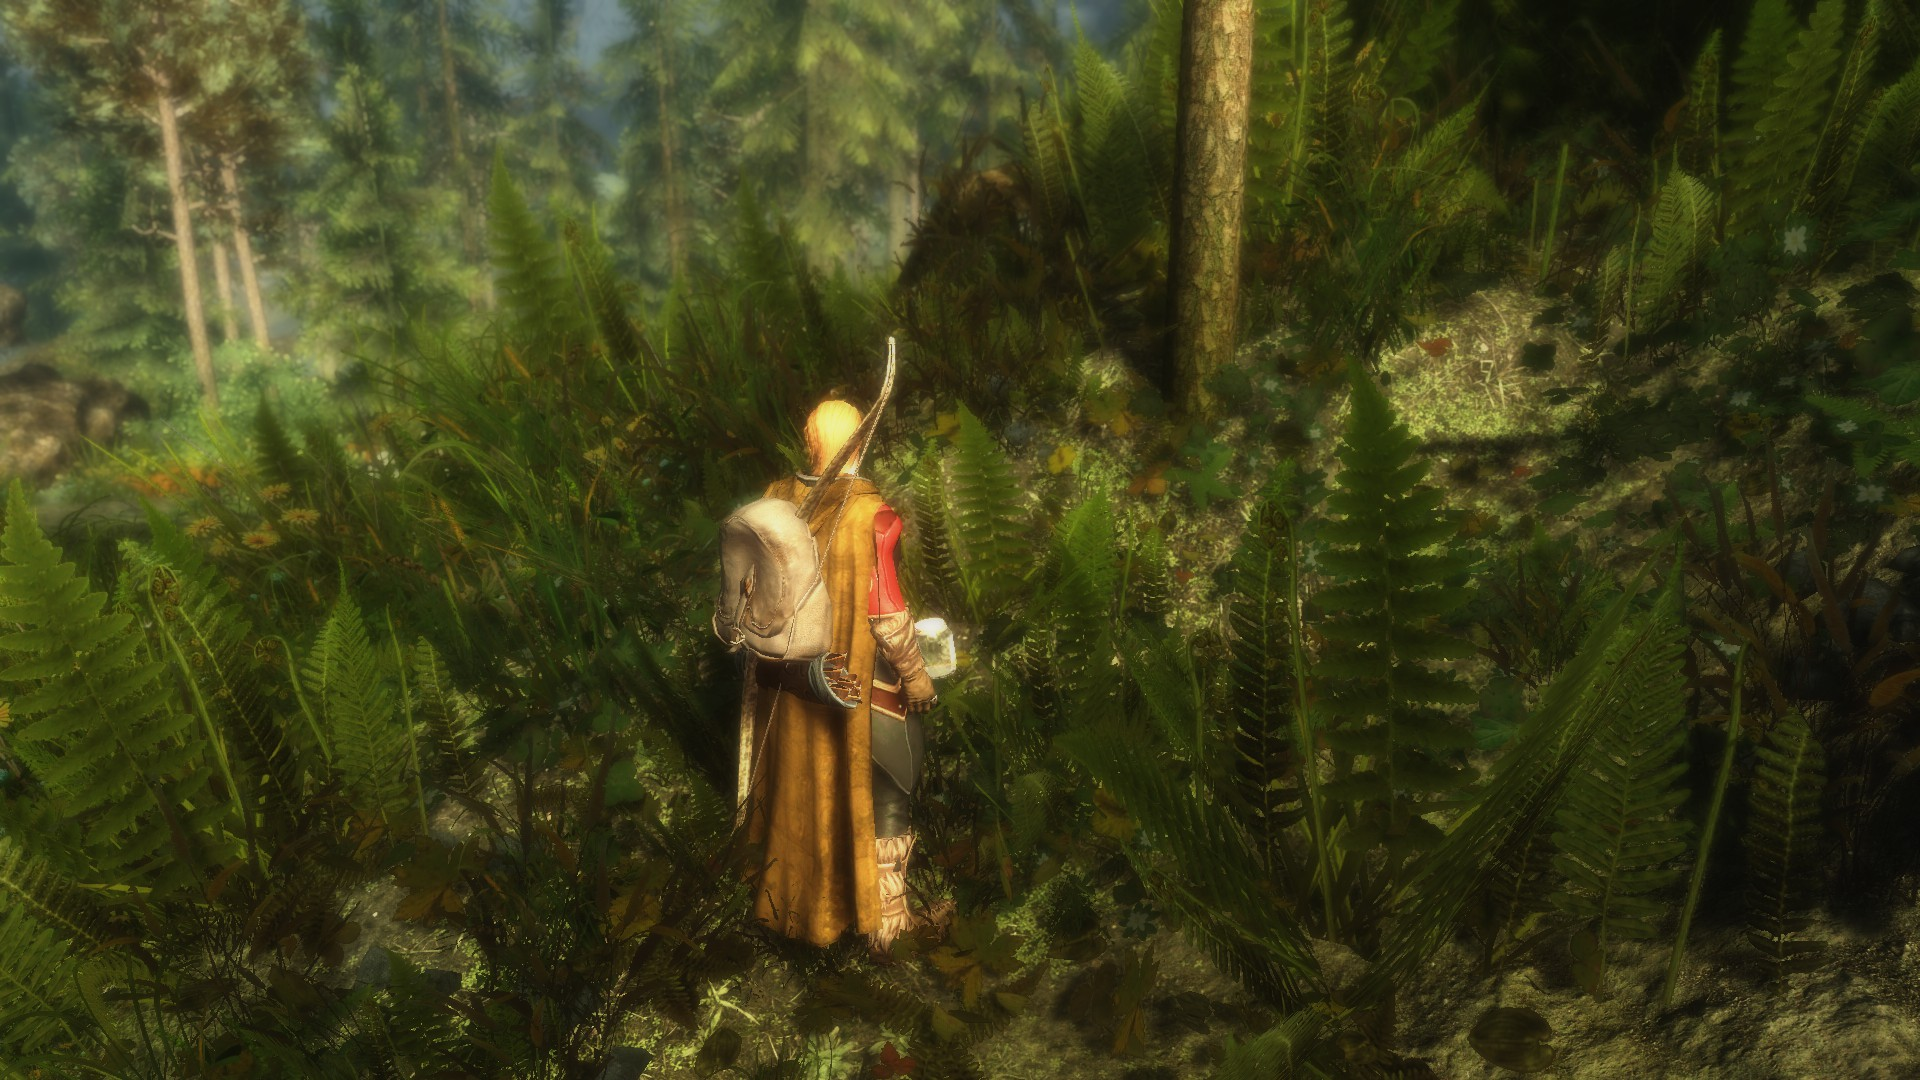 Relaxing Grass On Skyrim Technical Support Loverslab Grass On Steroids Sse Skyrim Grass On Steroids Fps Drop Help houzz-02 Grass On Steroids